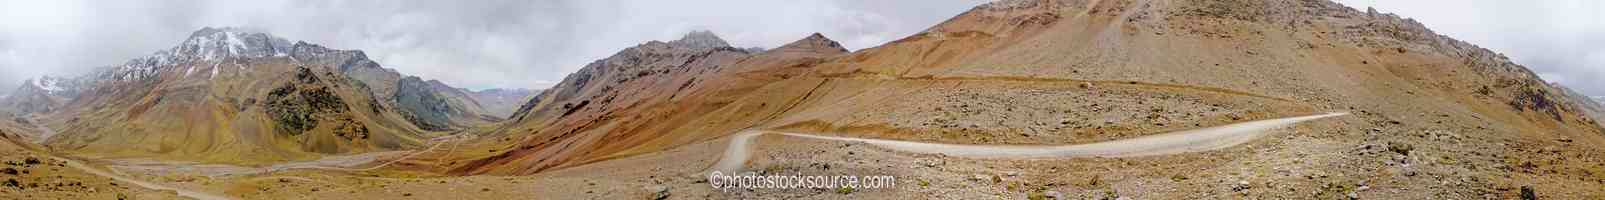 Photo of Old Chilean Pass Road